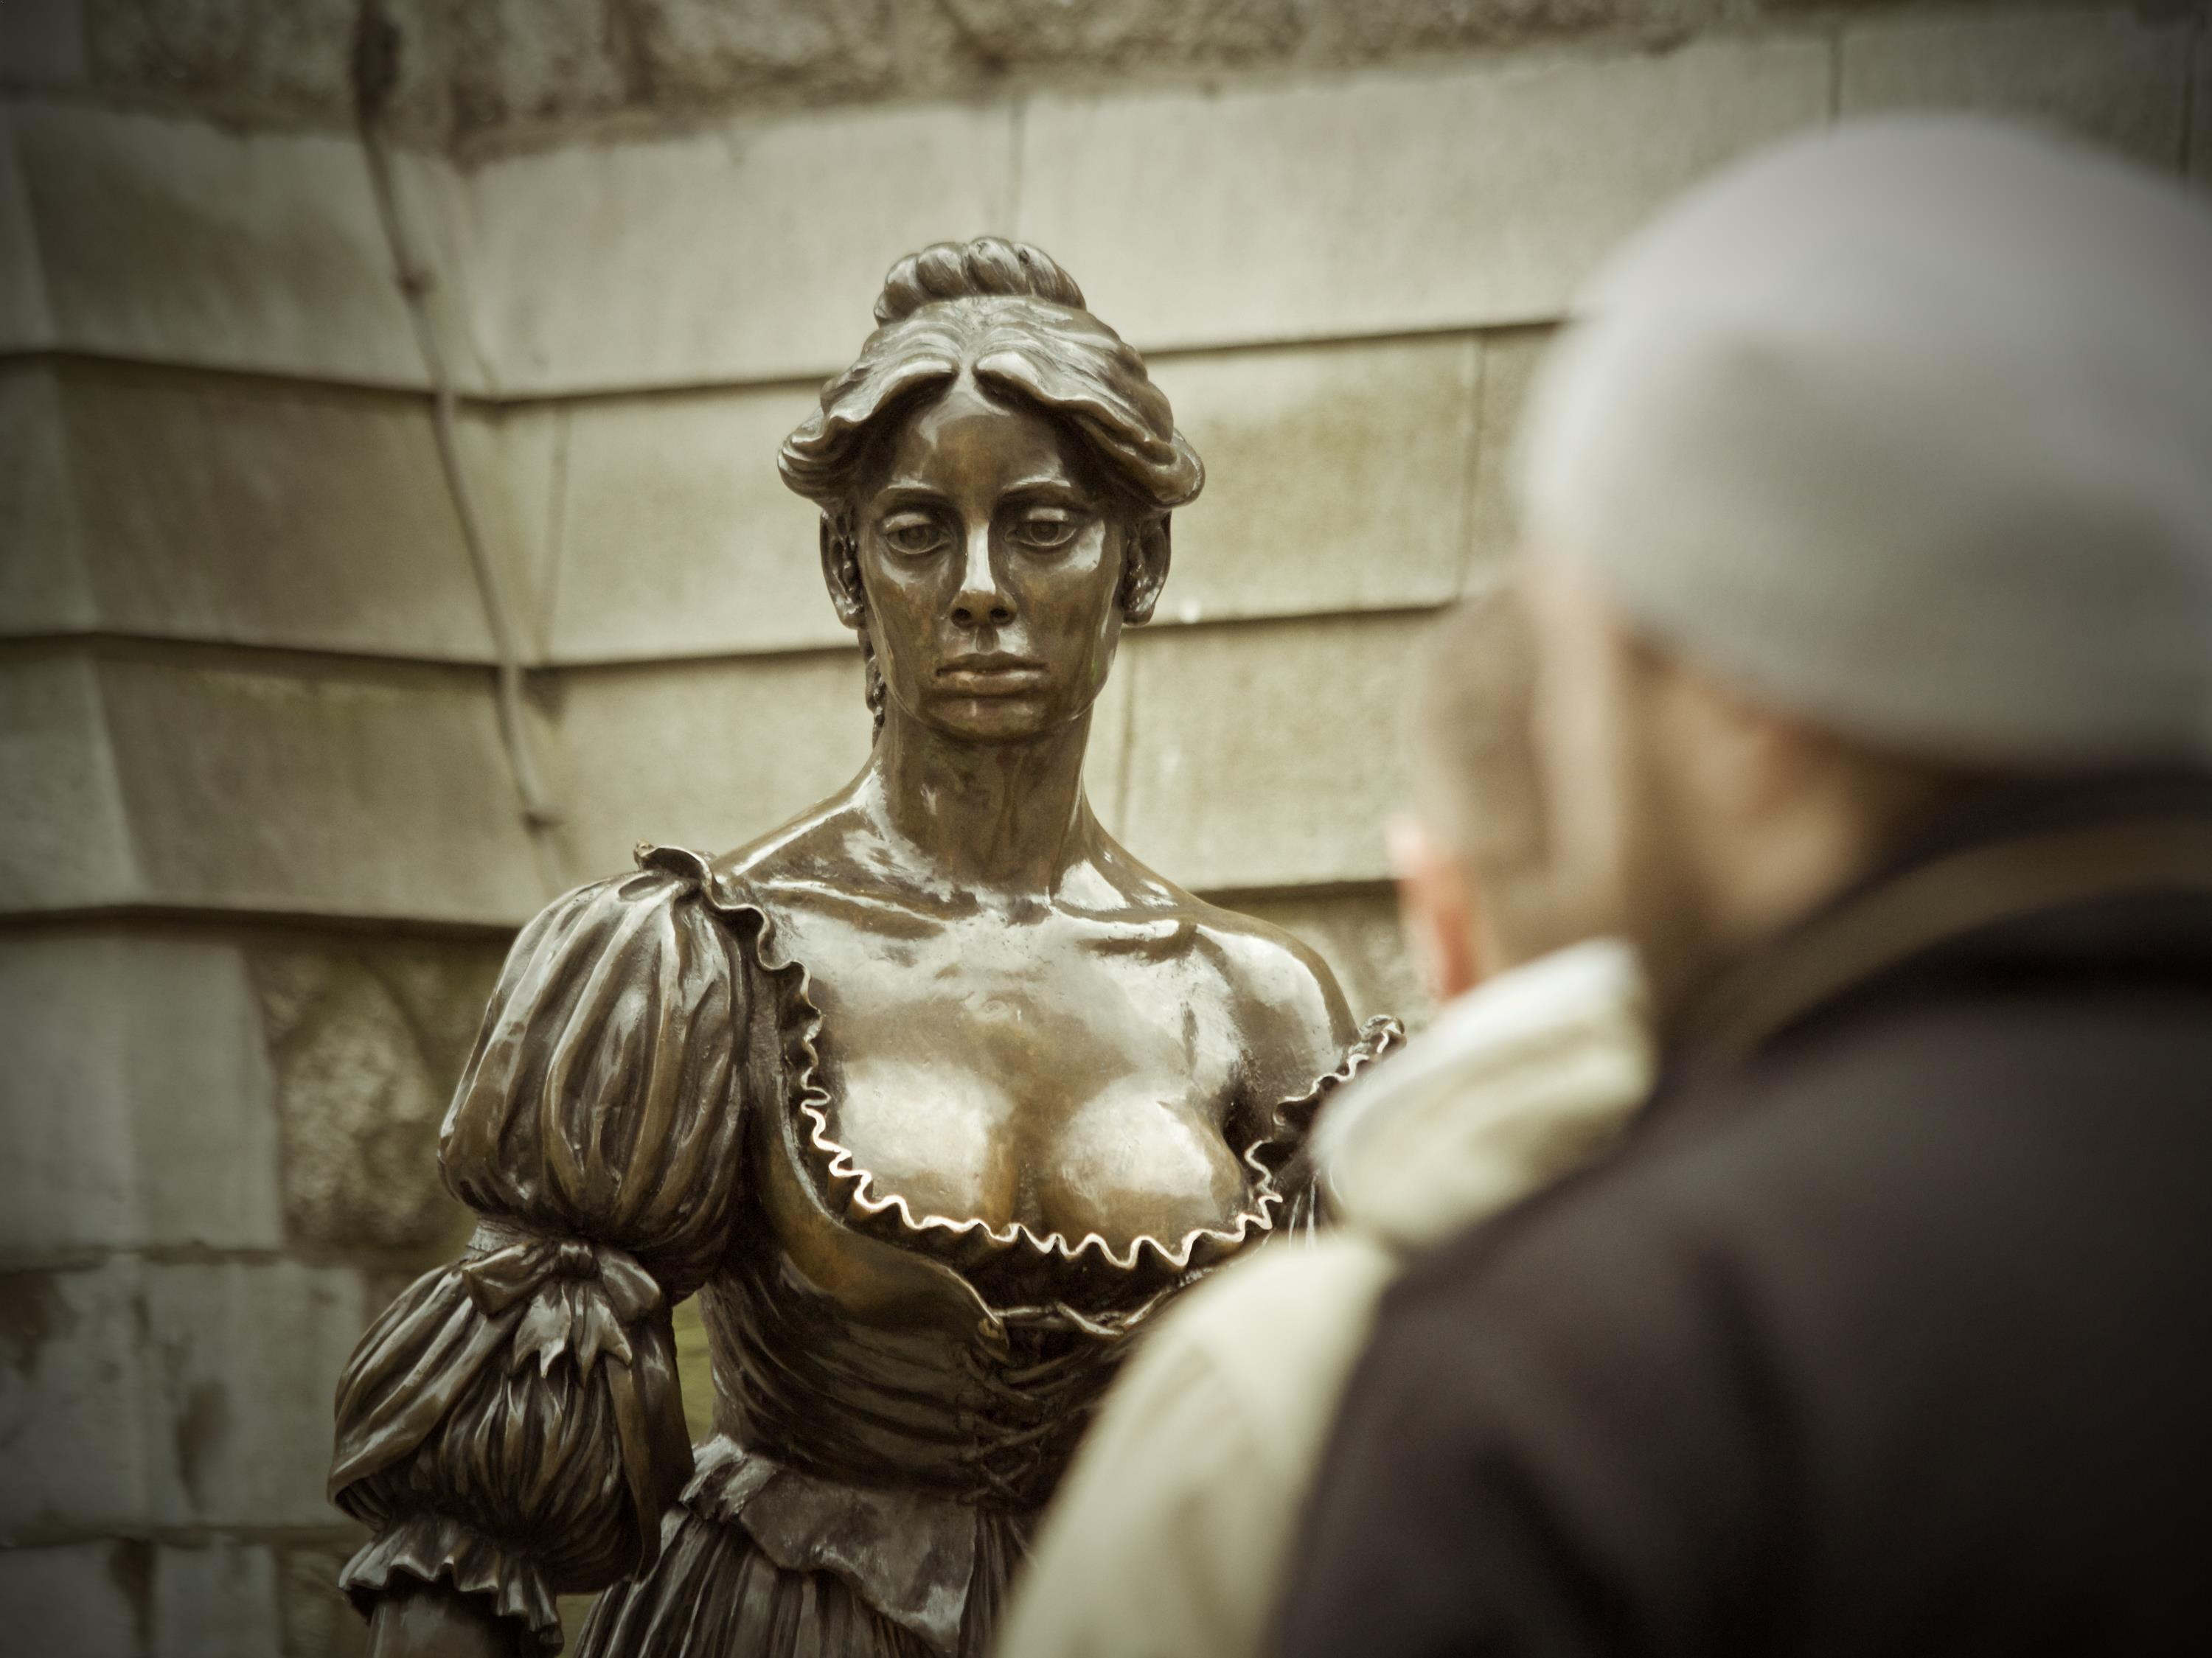 No article about Ireland would be complete without Molly Malone now would it?